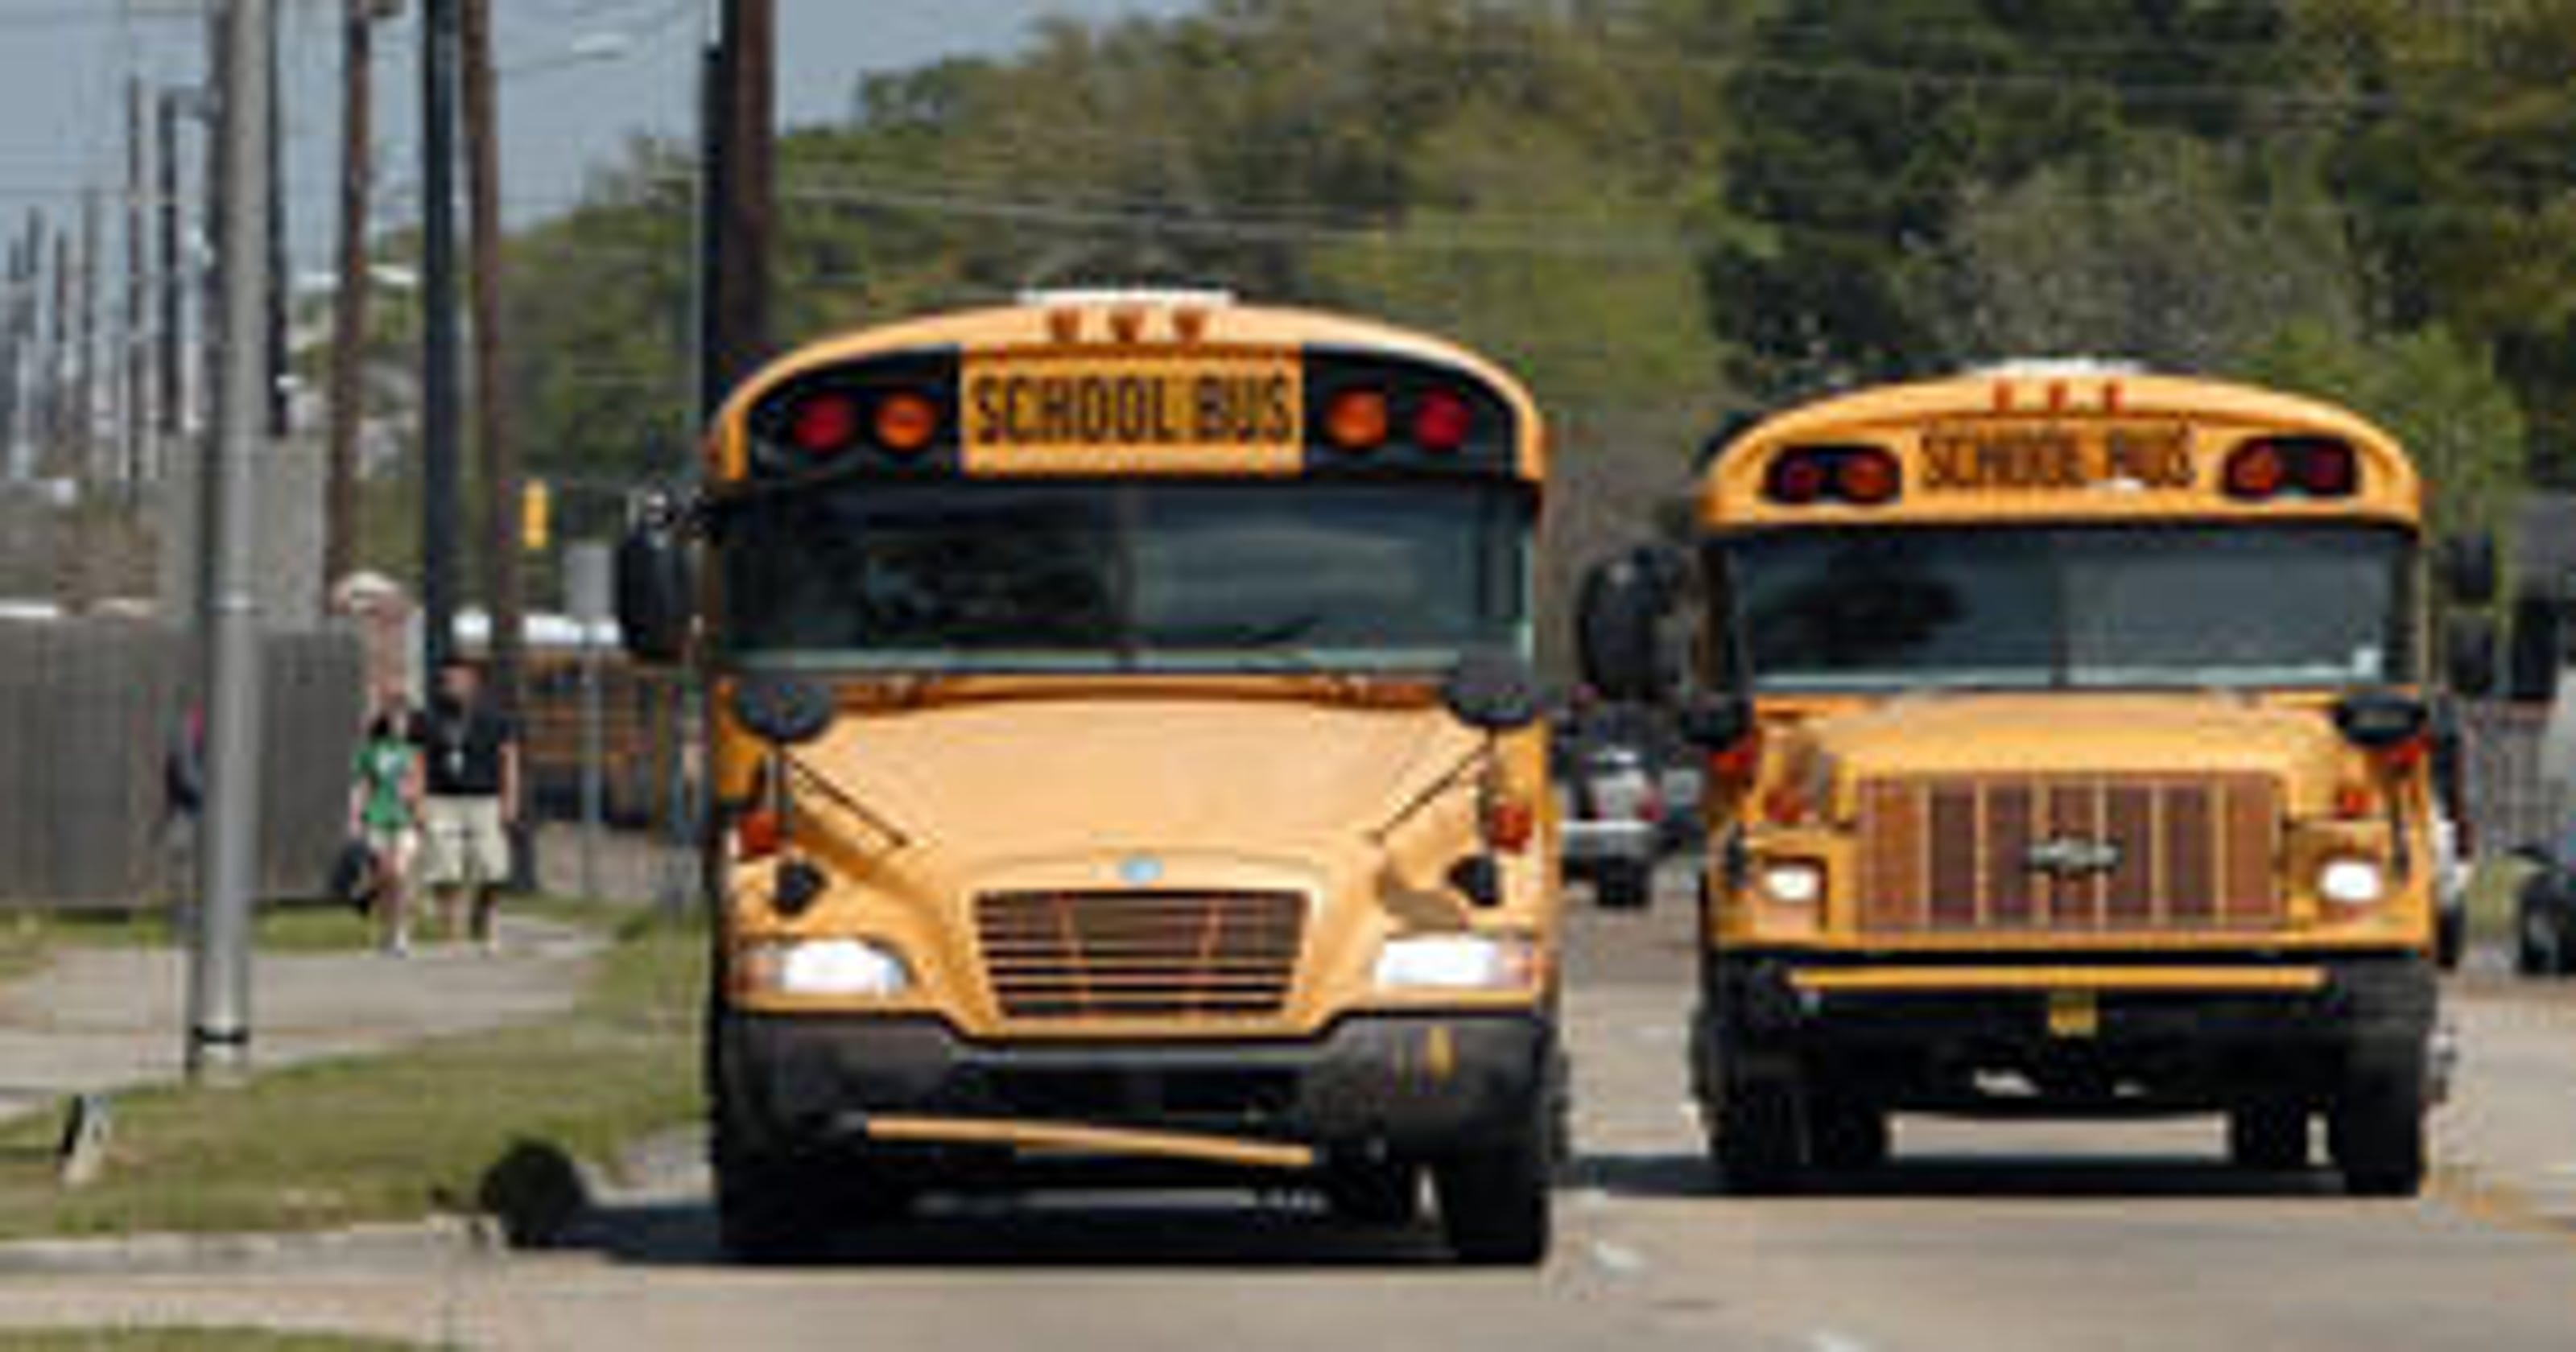 Robust' safety plan launched for school employees